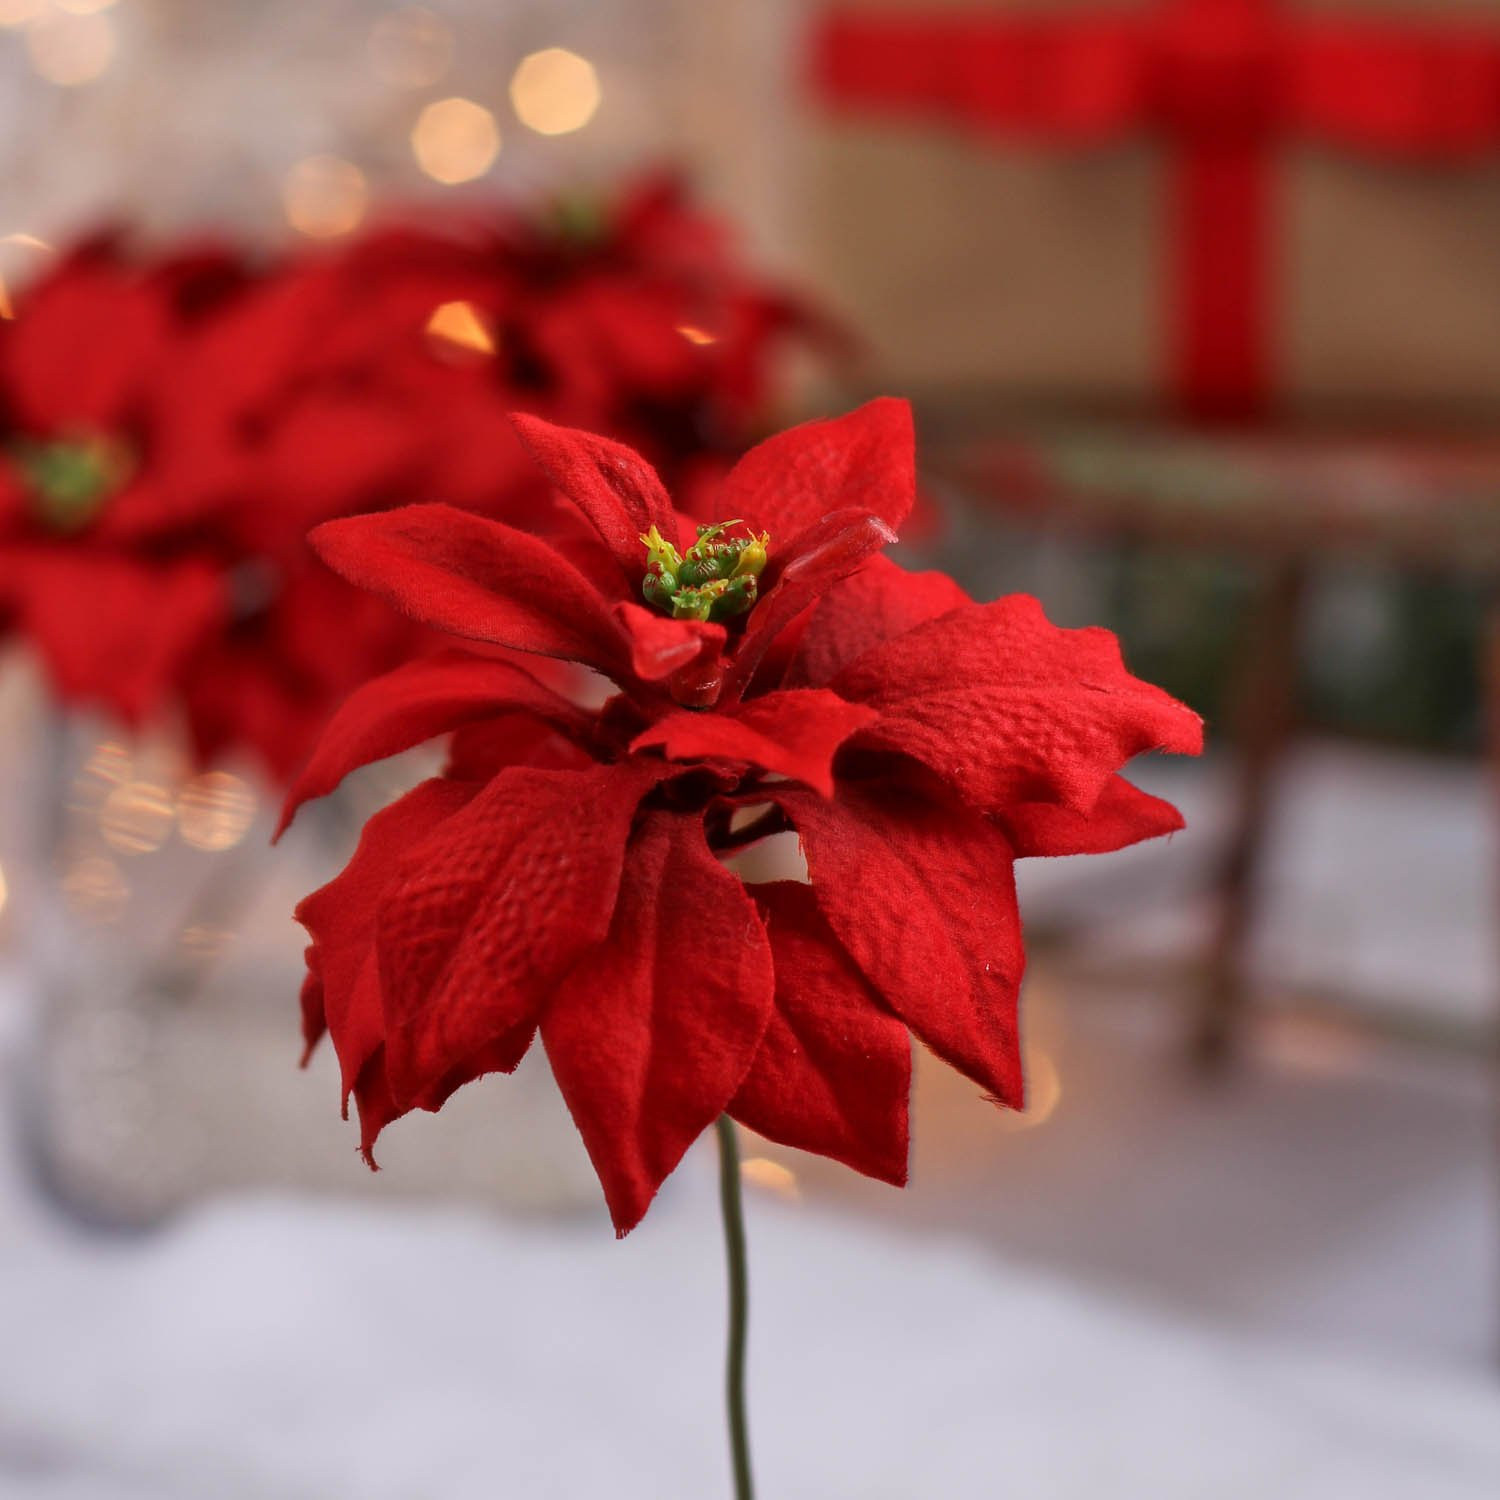 Factory Direct Craft Package of 24 Soft Touch Red Poinsettia Artificial Accent Picks for Christmas Holiday Flower Arrangements, Wreaths and Holiday Decorations